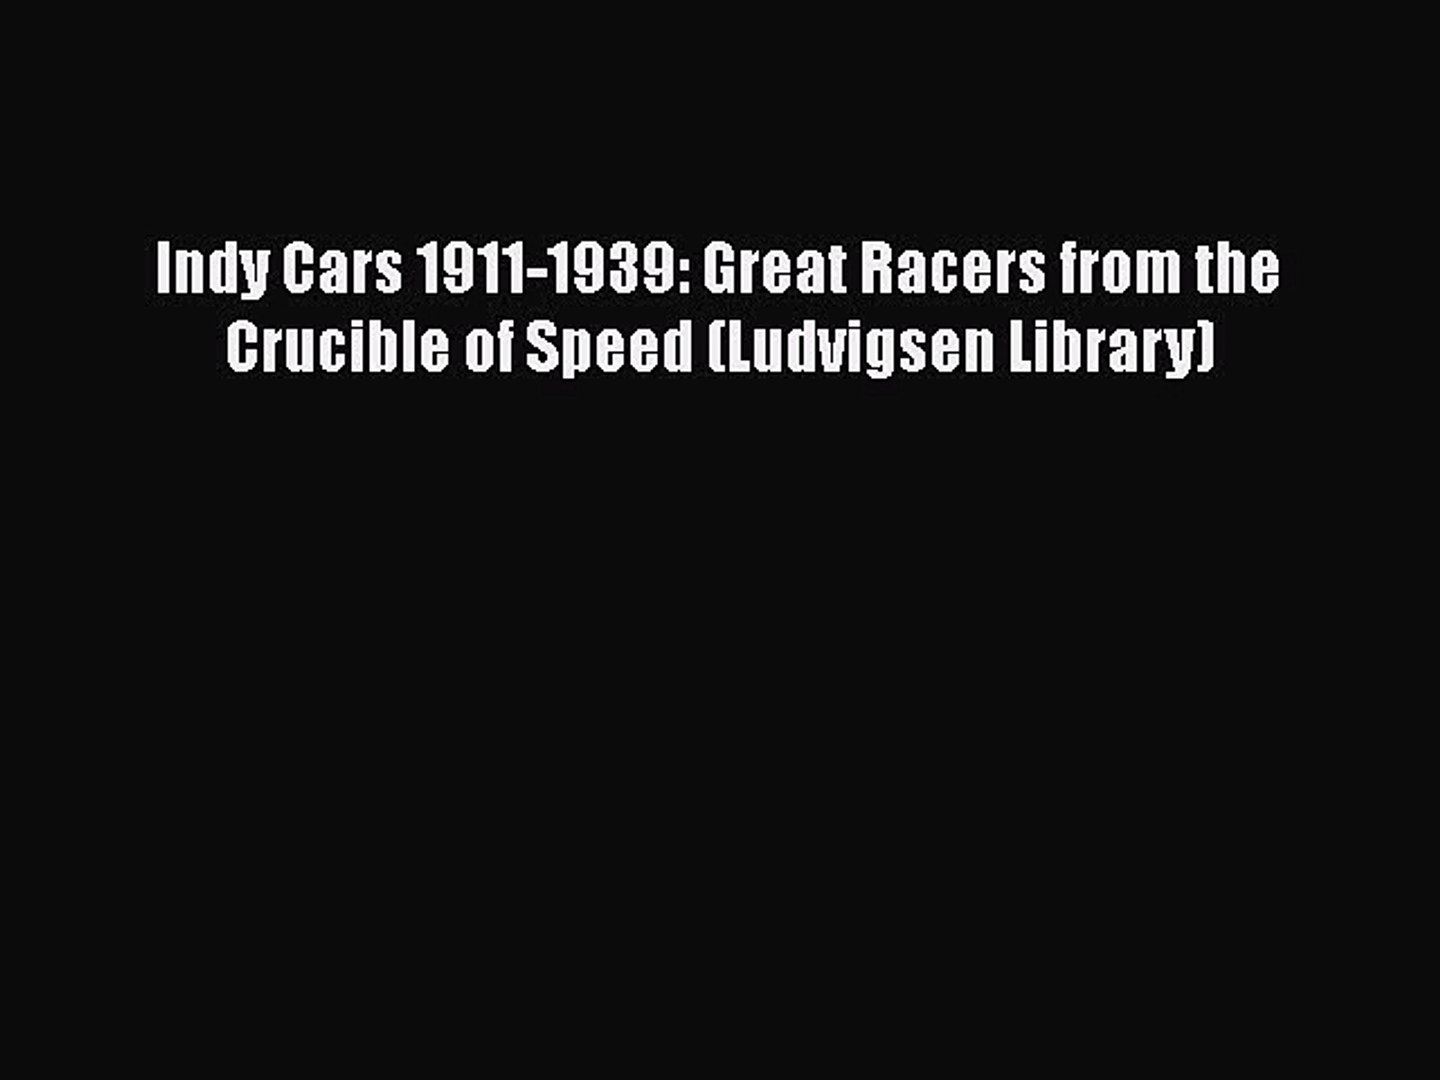 Read Indy Cars 1911-1939: Great Racers from the Crucible of Speed (Ludvigsen Library) Ebook